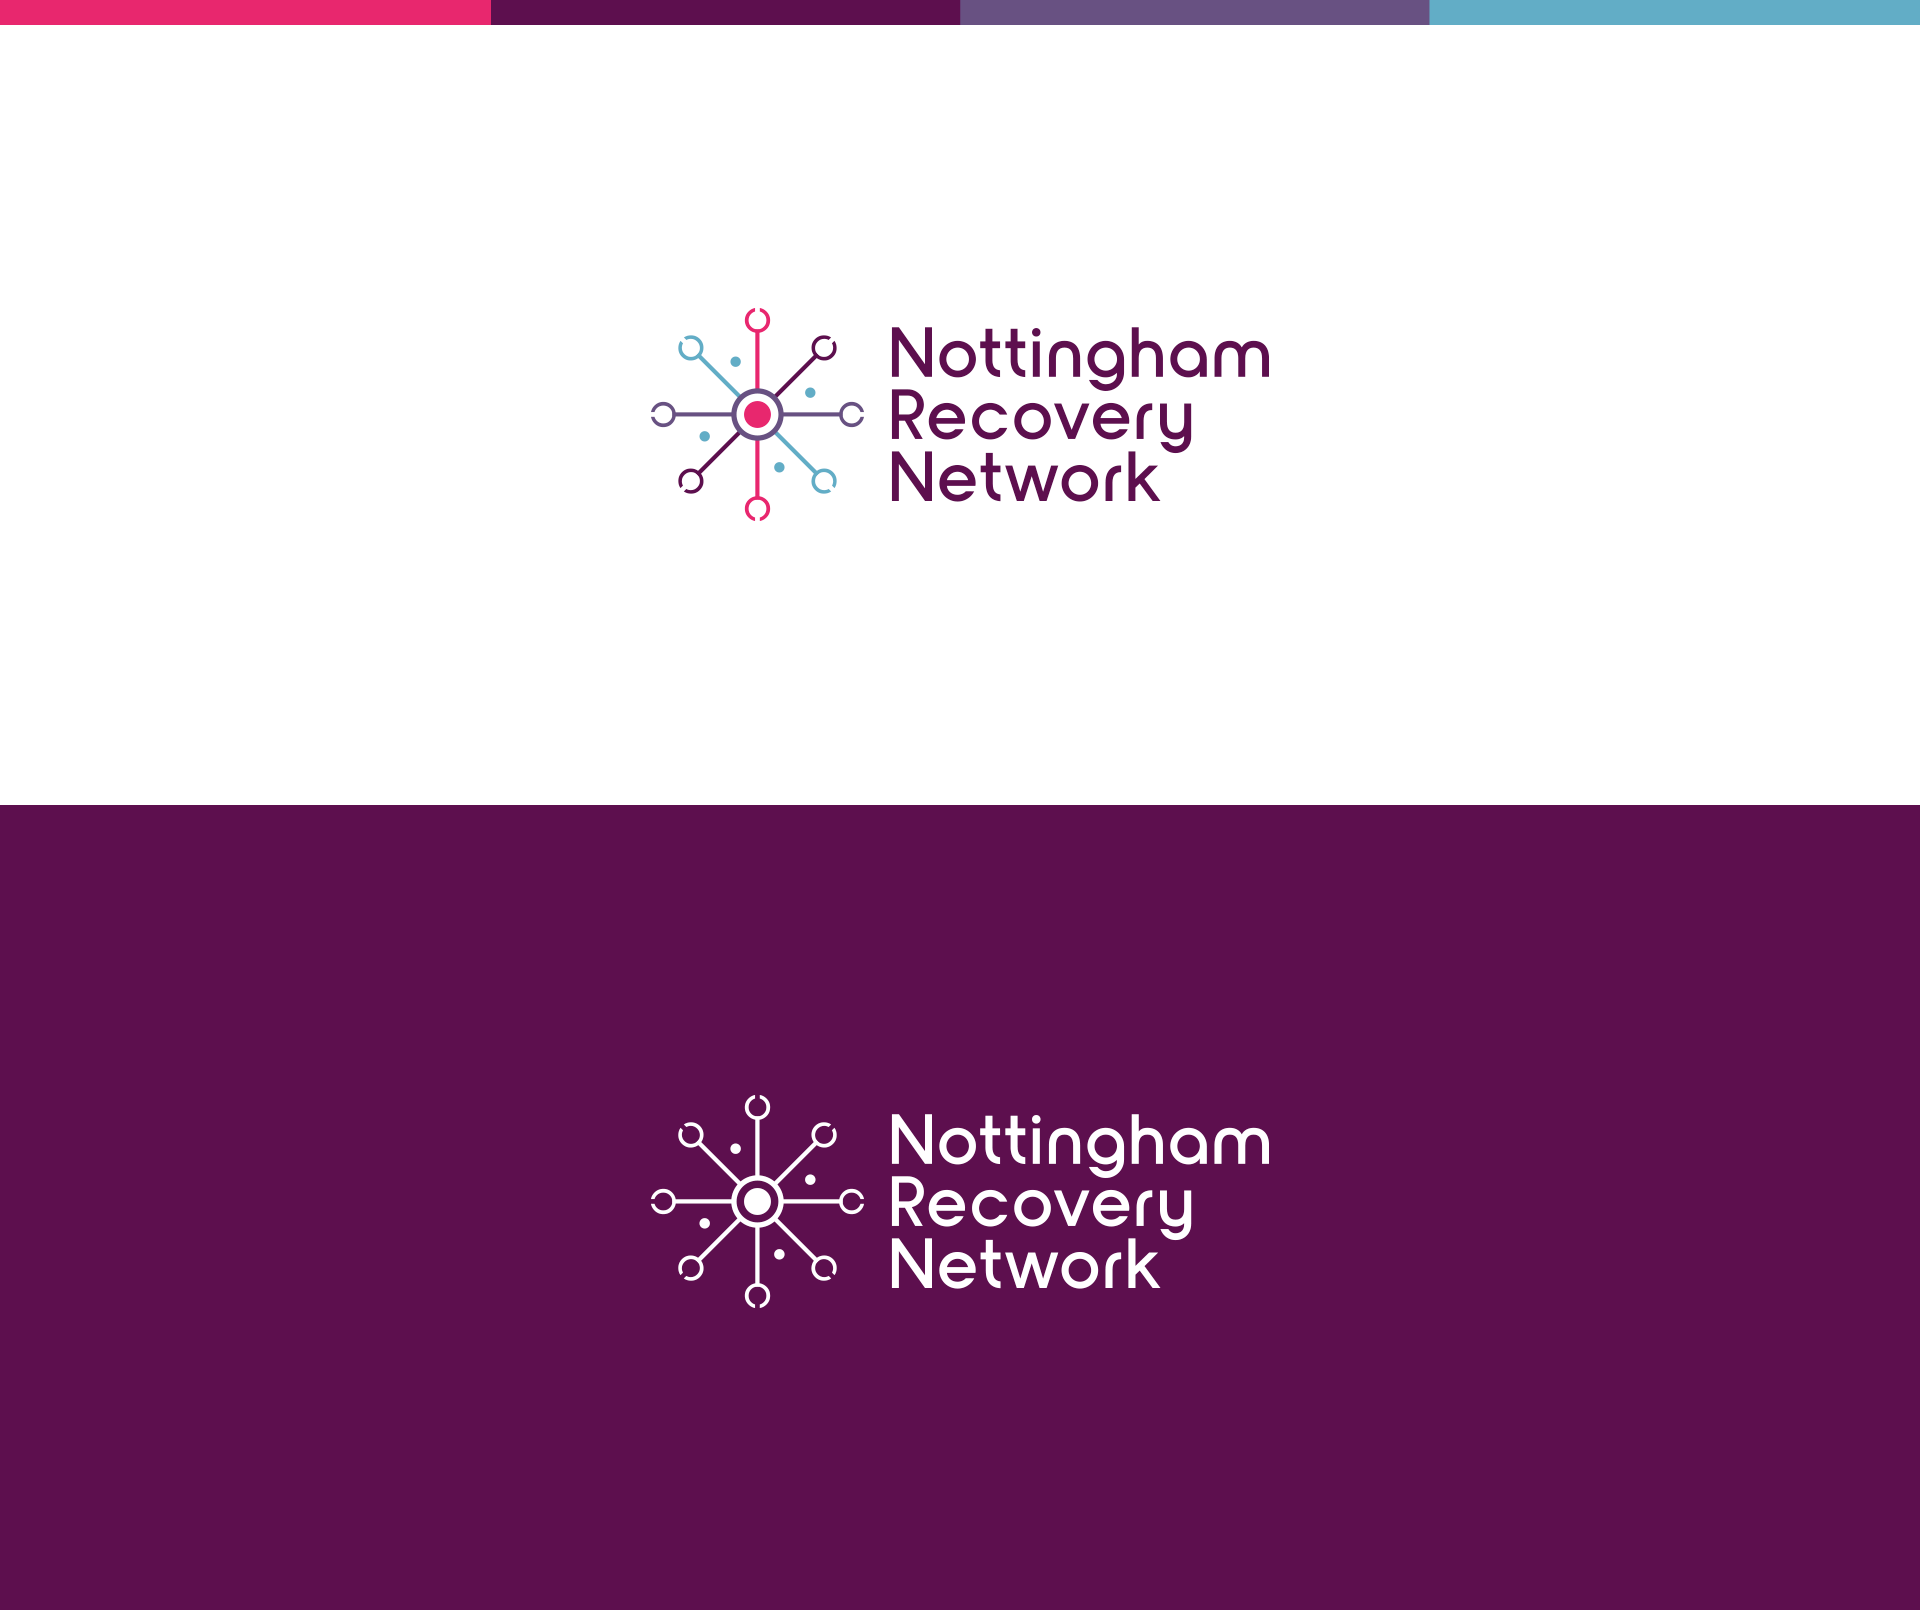 Nottingham Recovery Network logo design